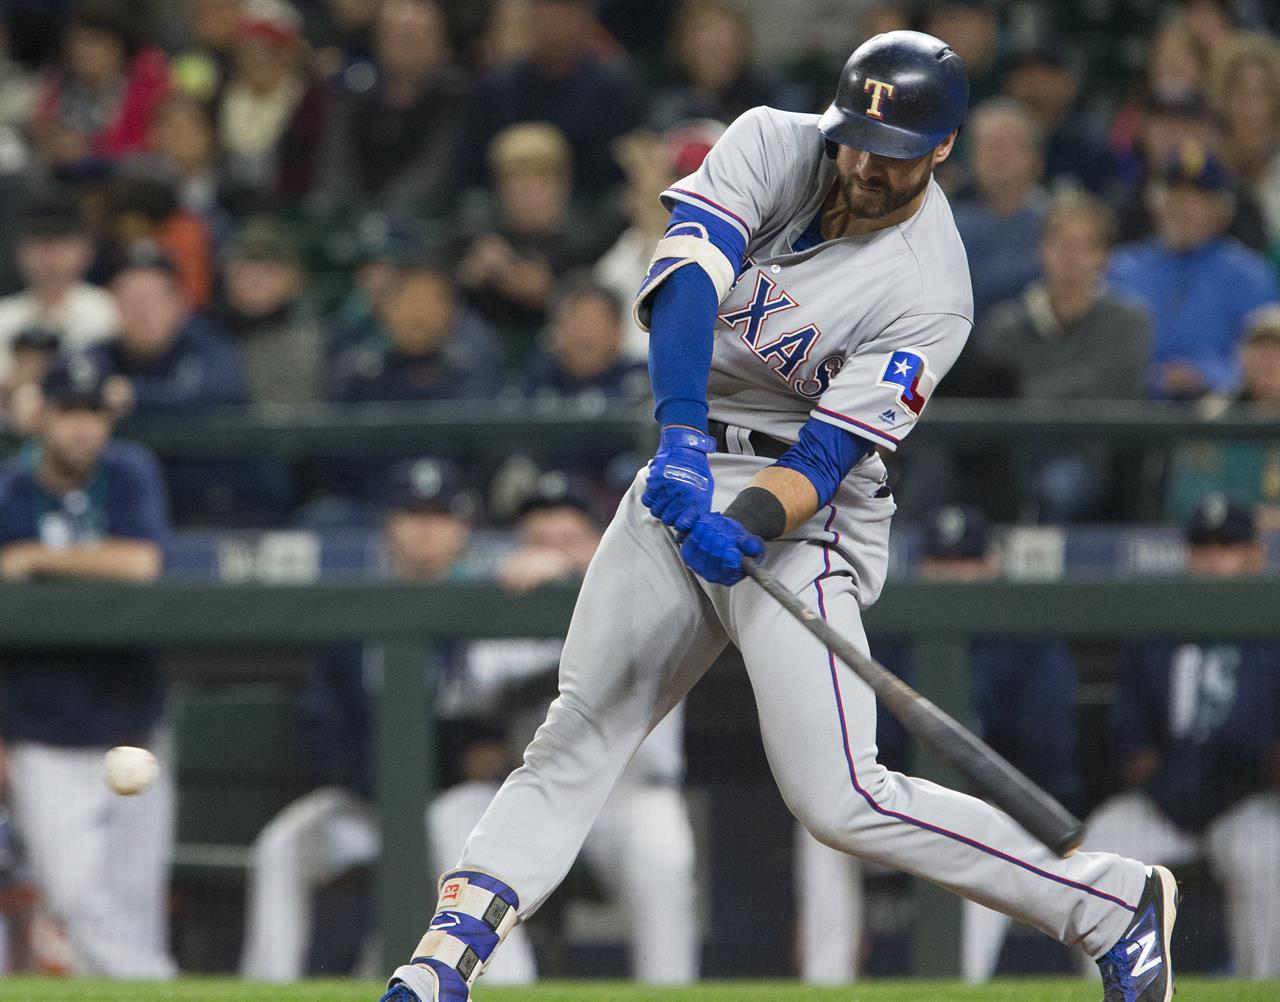 Rangers score twice in 8th inning for 3-1 win over ...